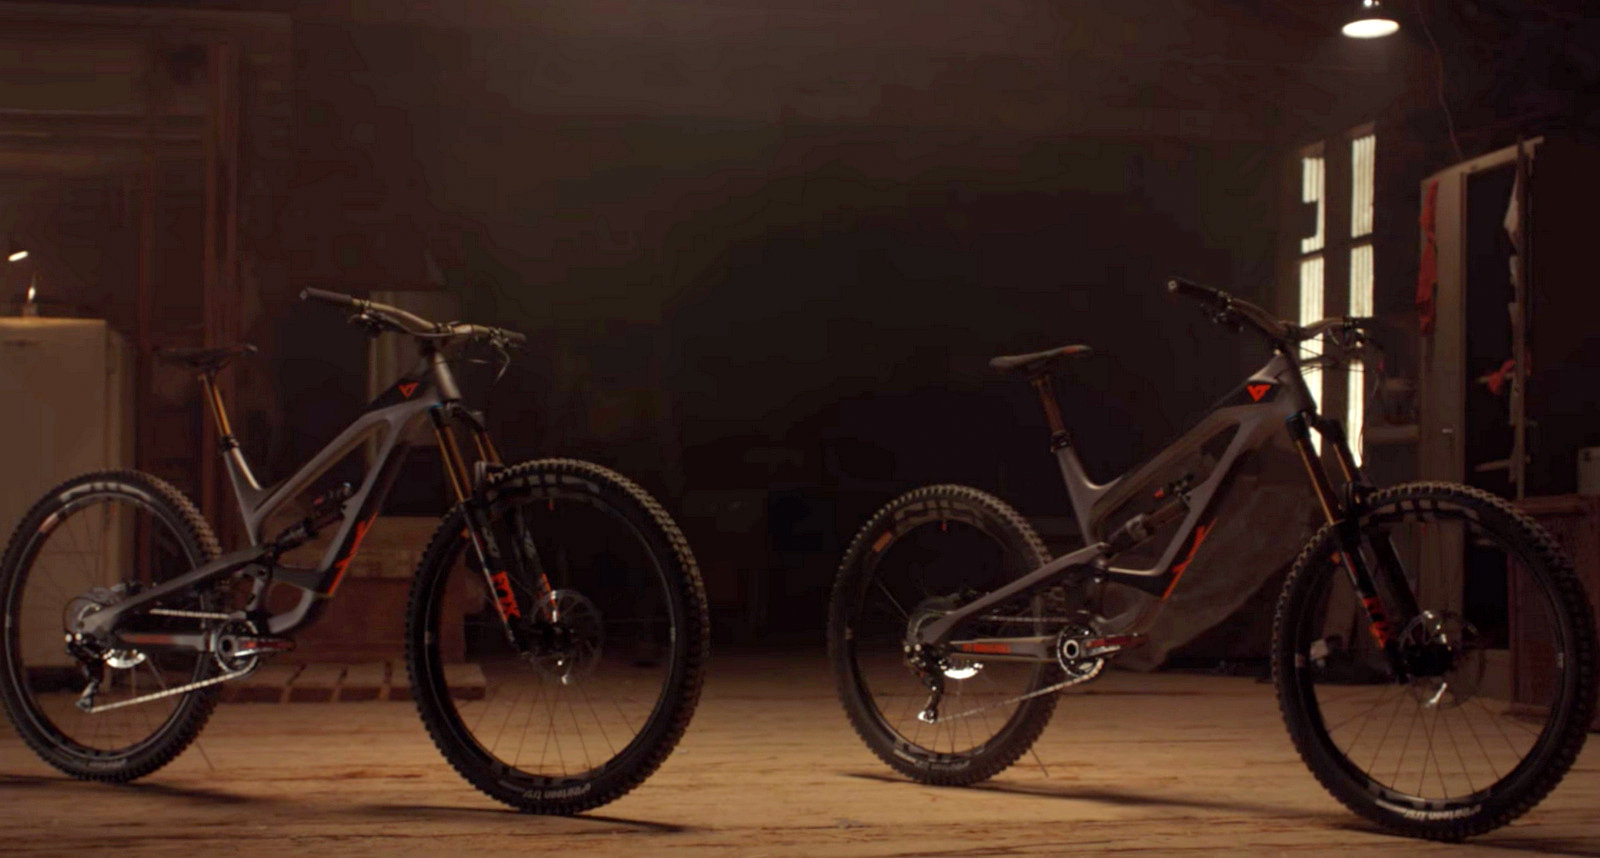 A 29er AND 27.5 version of the Capra will be released tomorrow, Nov. 8